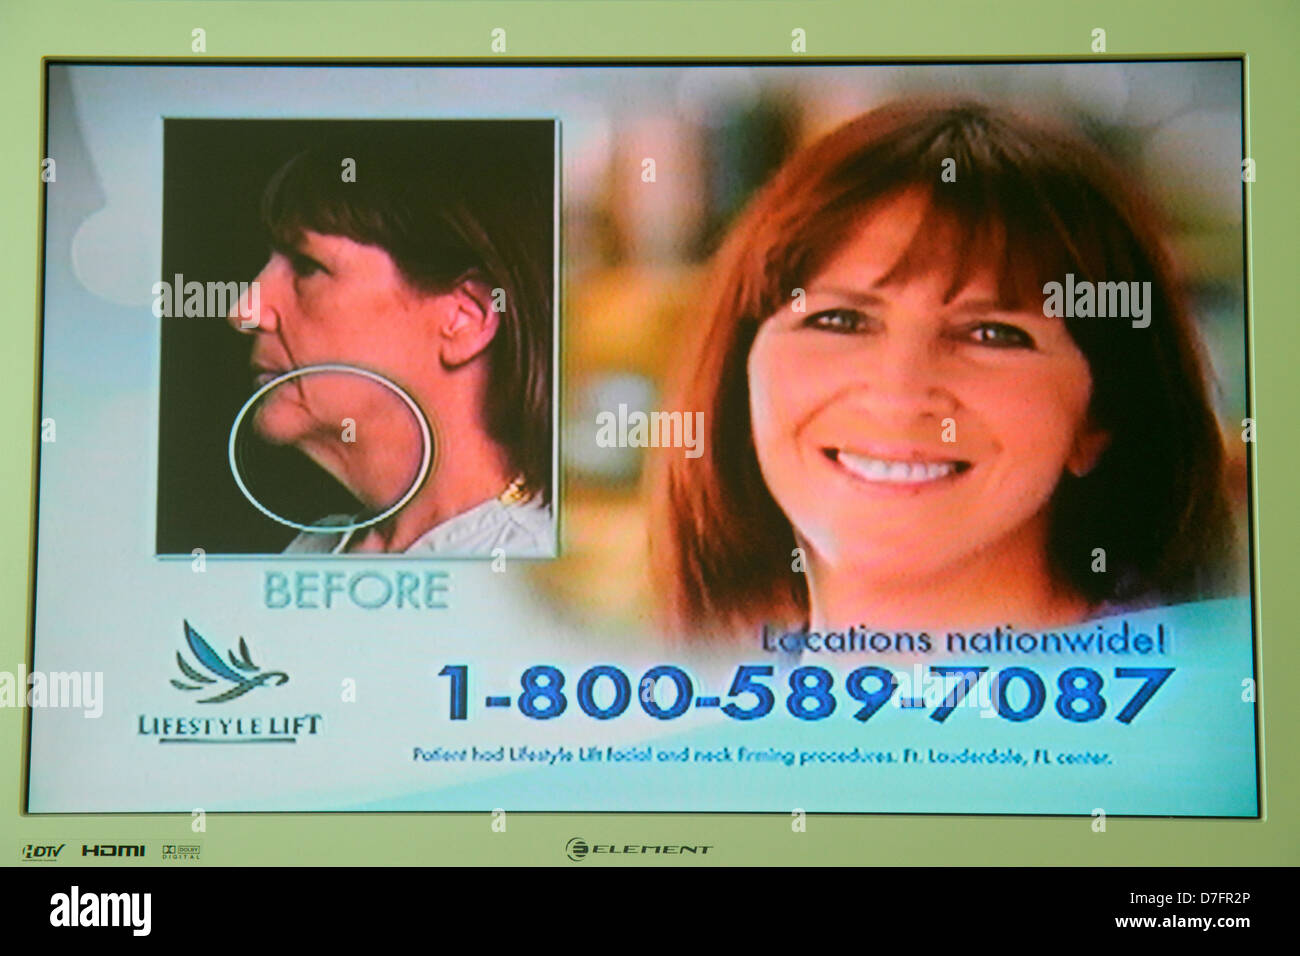 Miami Beach Florida TV television screen flat panel HDTV monitor toll-free phone number commercial ad Lifestyle Stock Photo